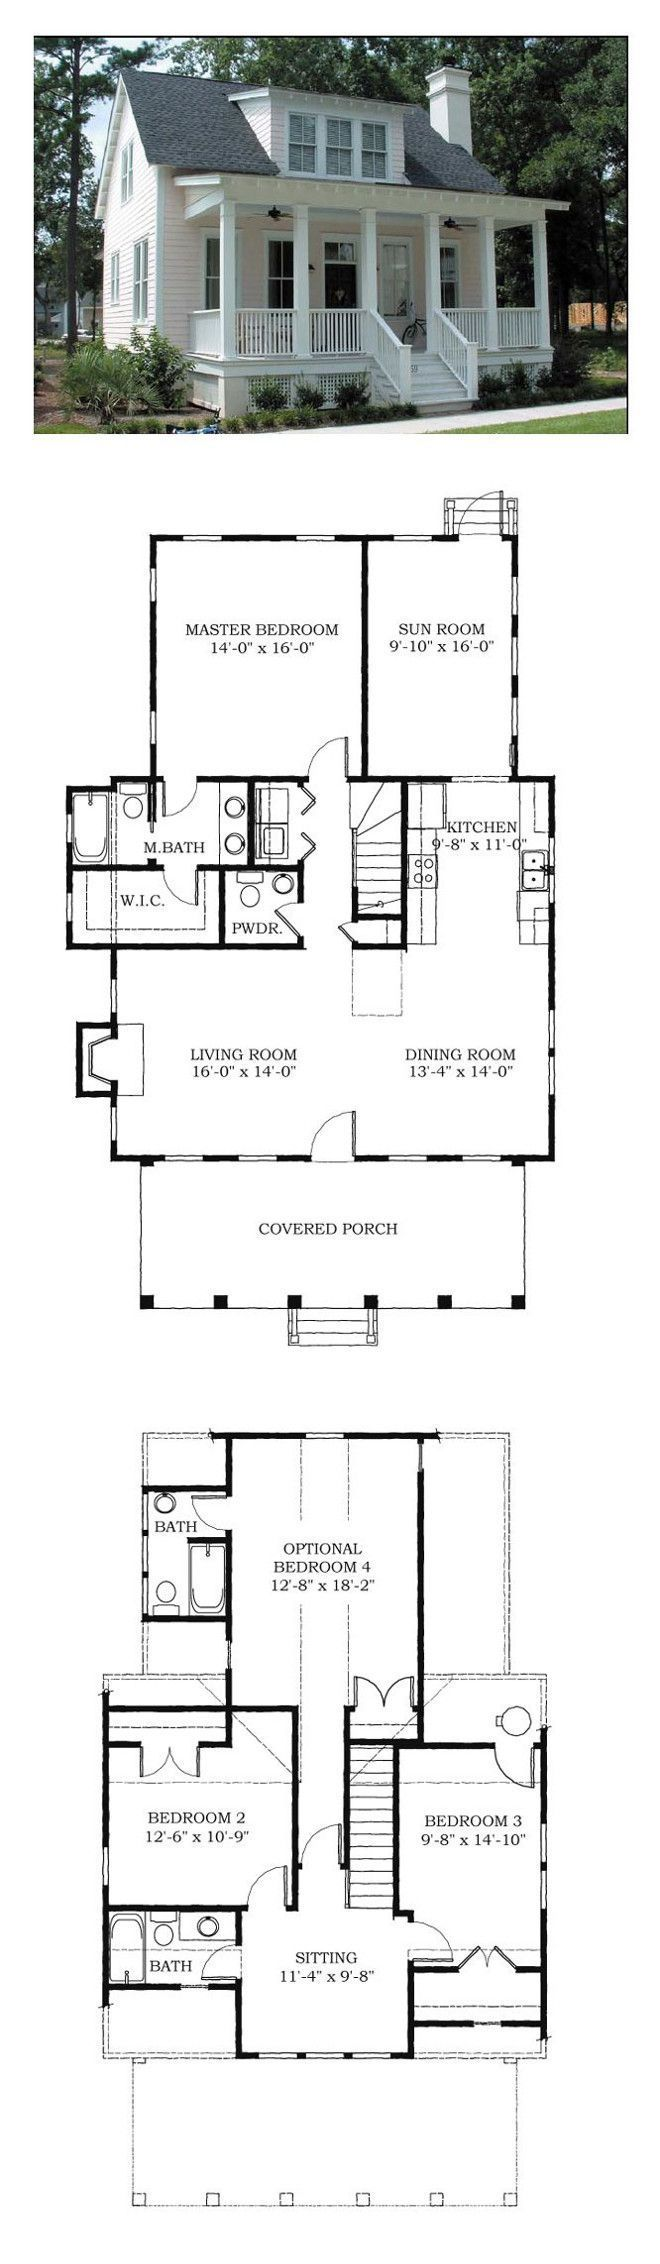 Cool 17 Best Ideas About Tiny House Plans On Pinterest Small House Largest Home Design Picture Inspirations Pitcheantrous